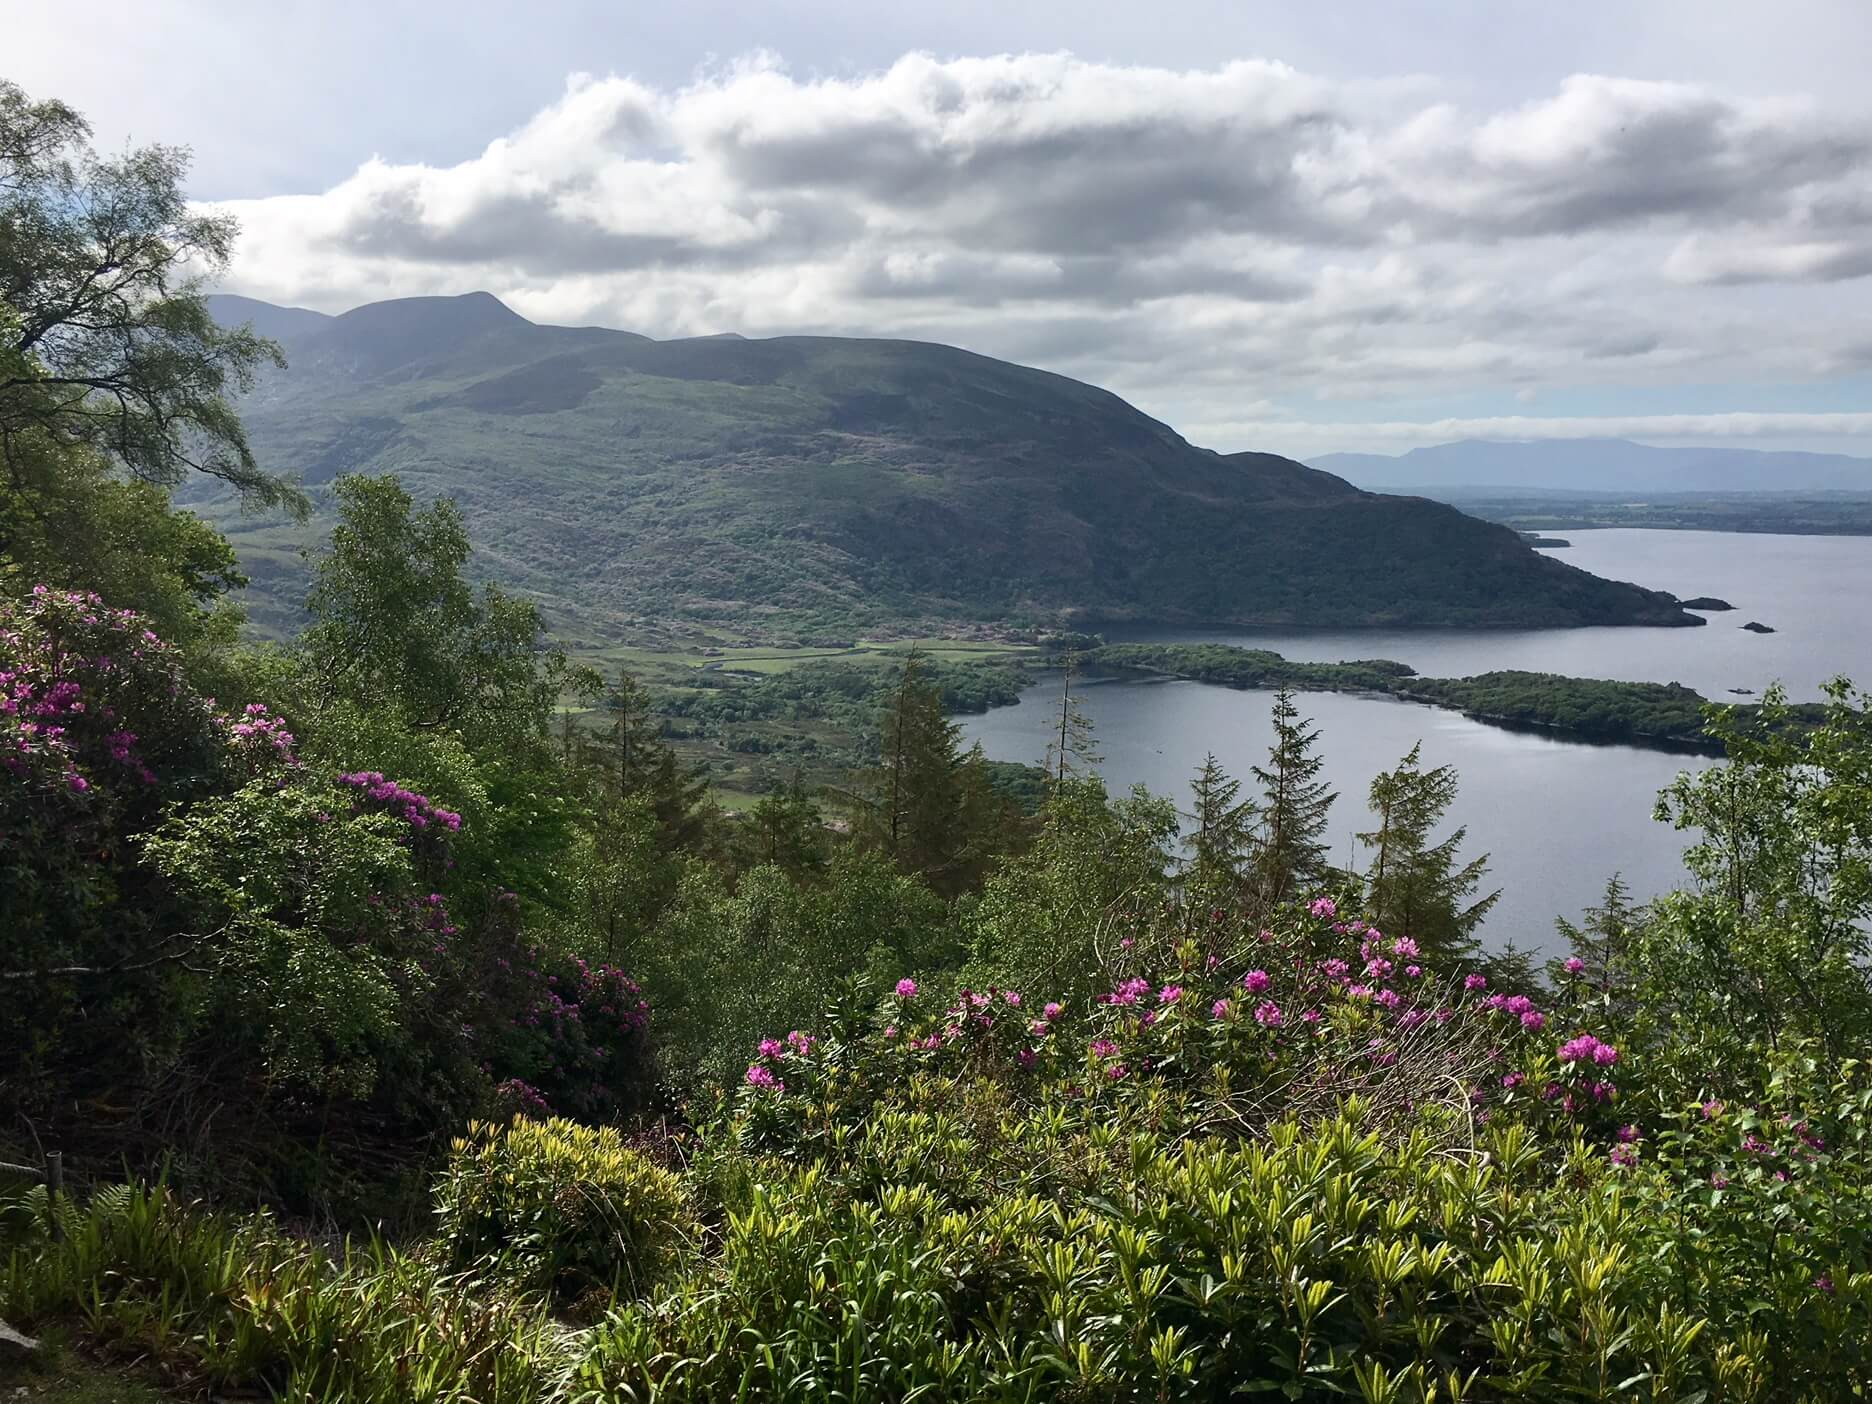 View from Torc Mountain in Killarney National Park, Ireland